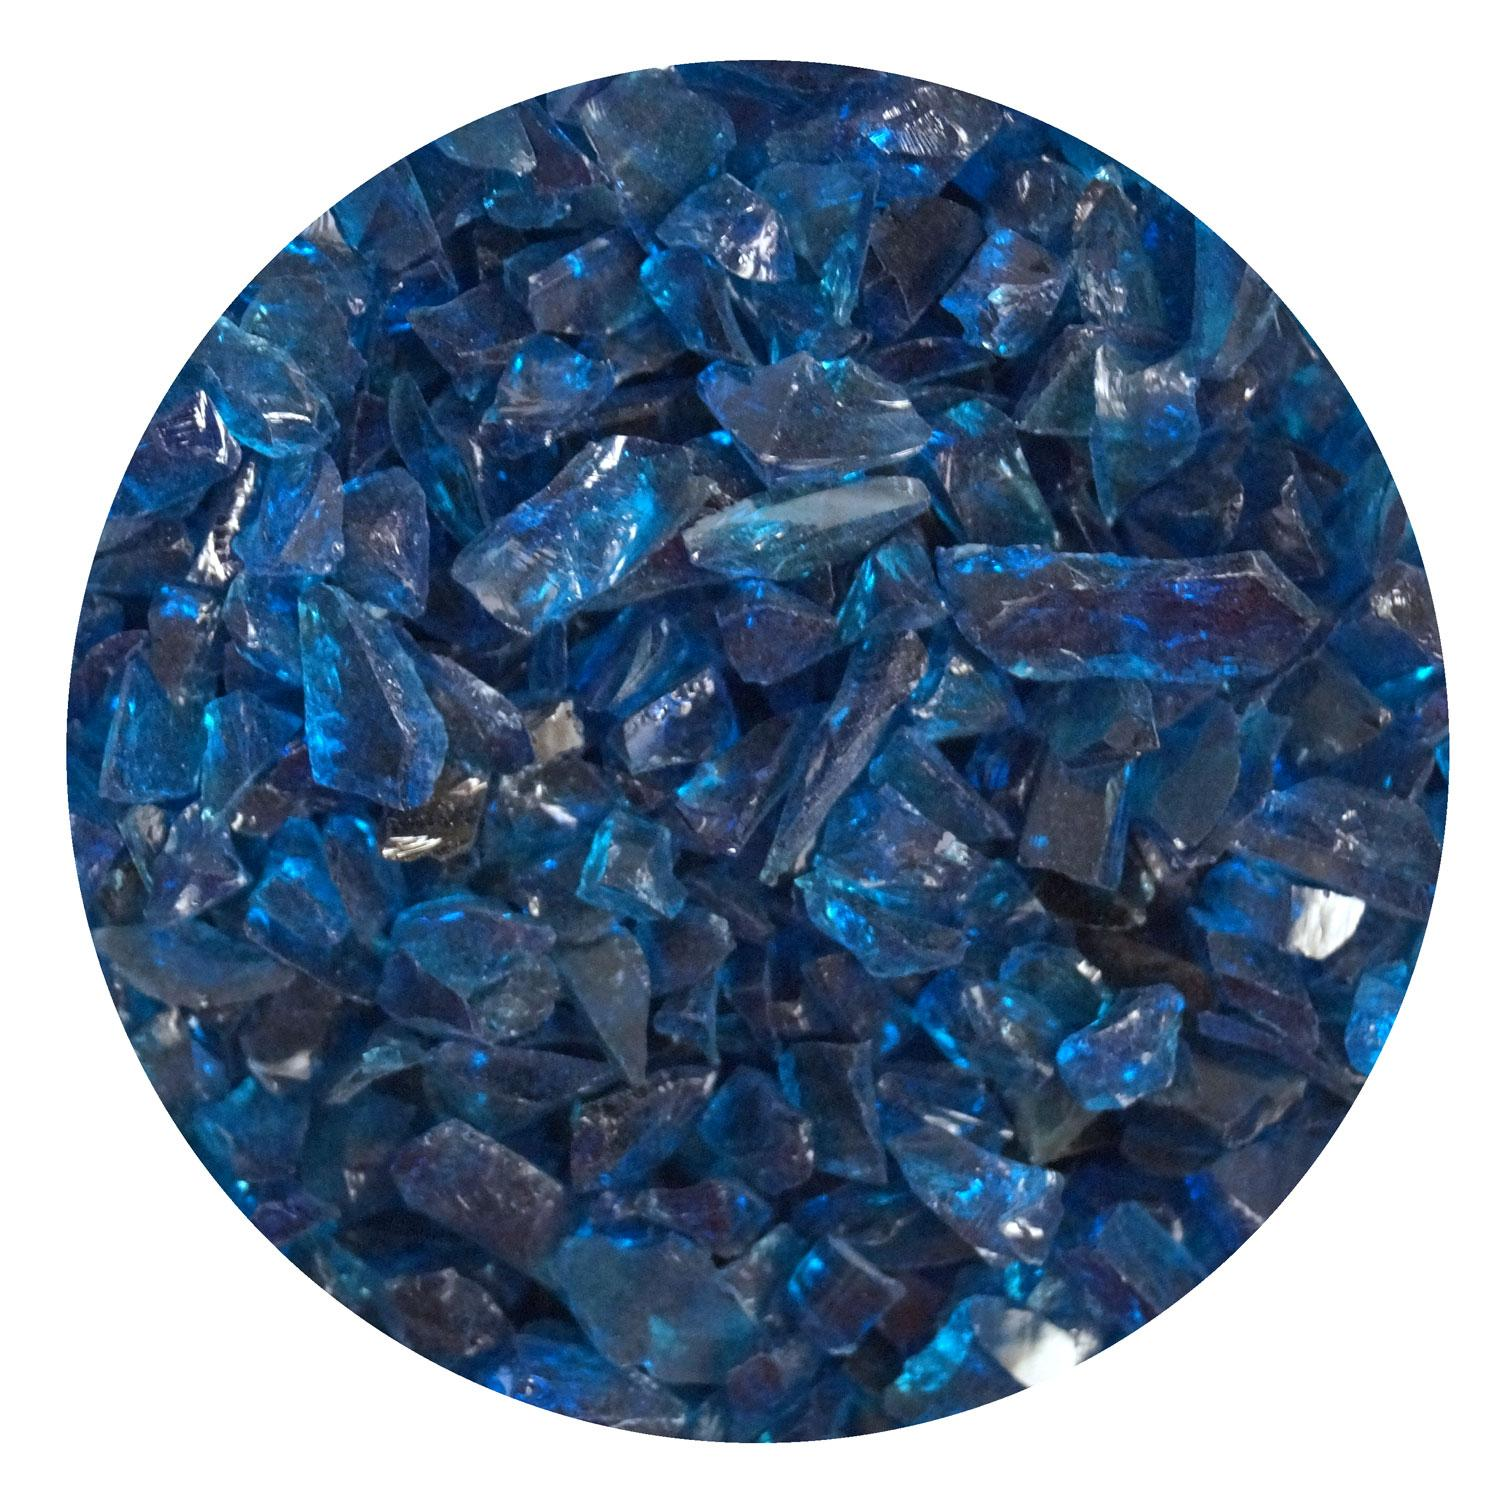 Stained Glass Sapphire Blue Tranparent Luminescent Fusible Wissmach Sheet